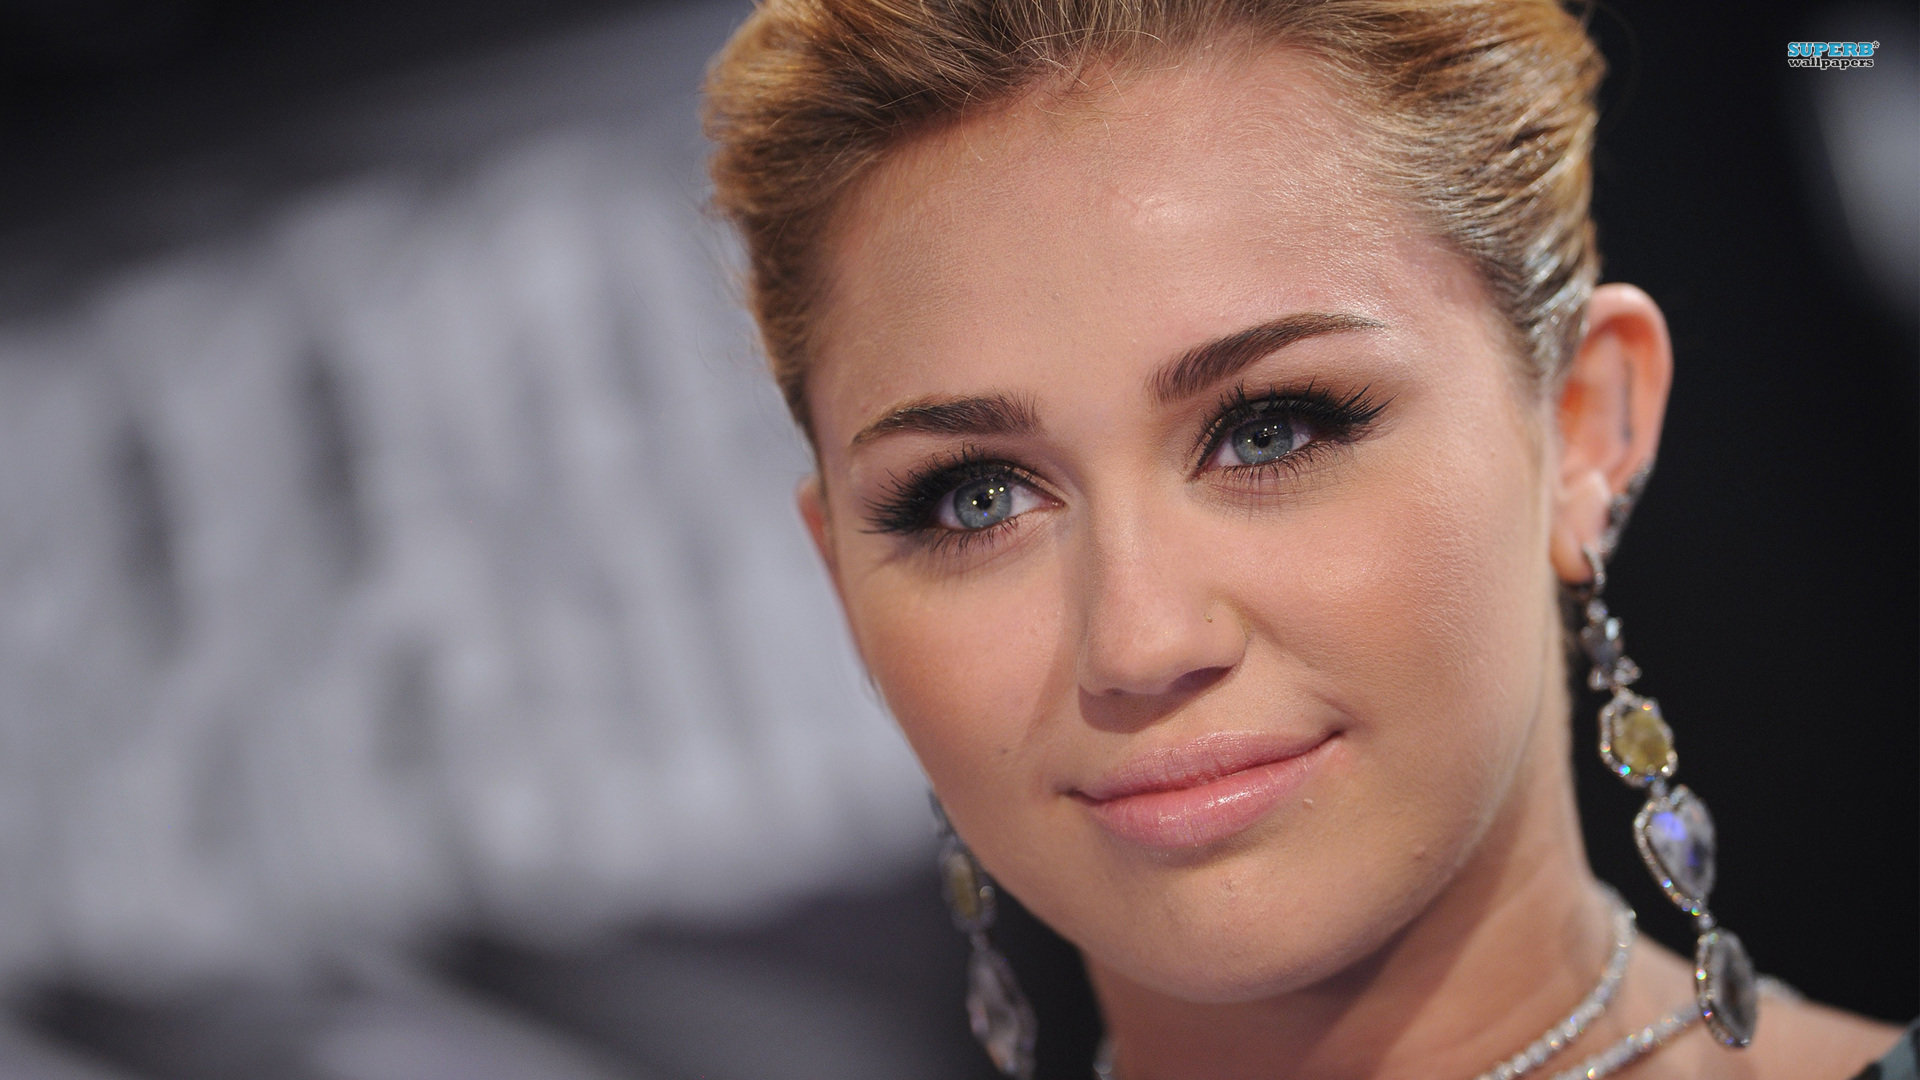 miley cyrus wallpapers 1920x1080 full hd (1080p) desktop backgrounds